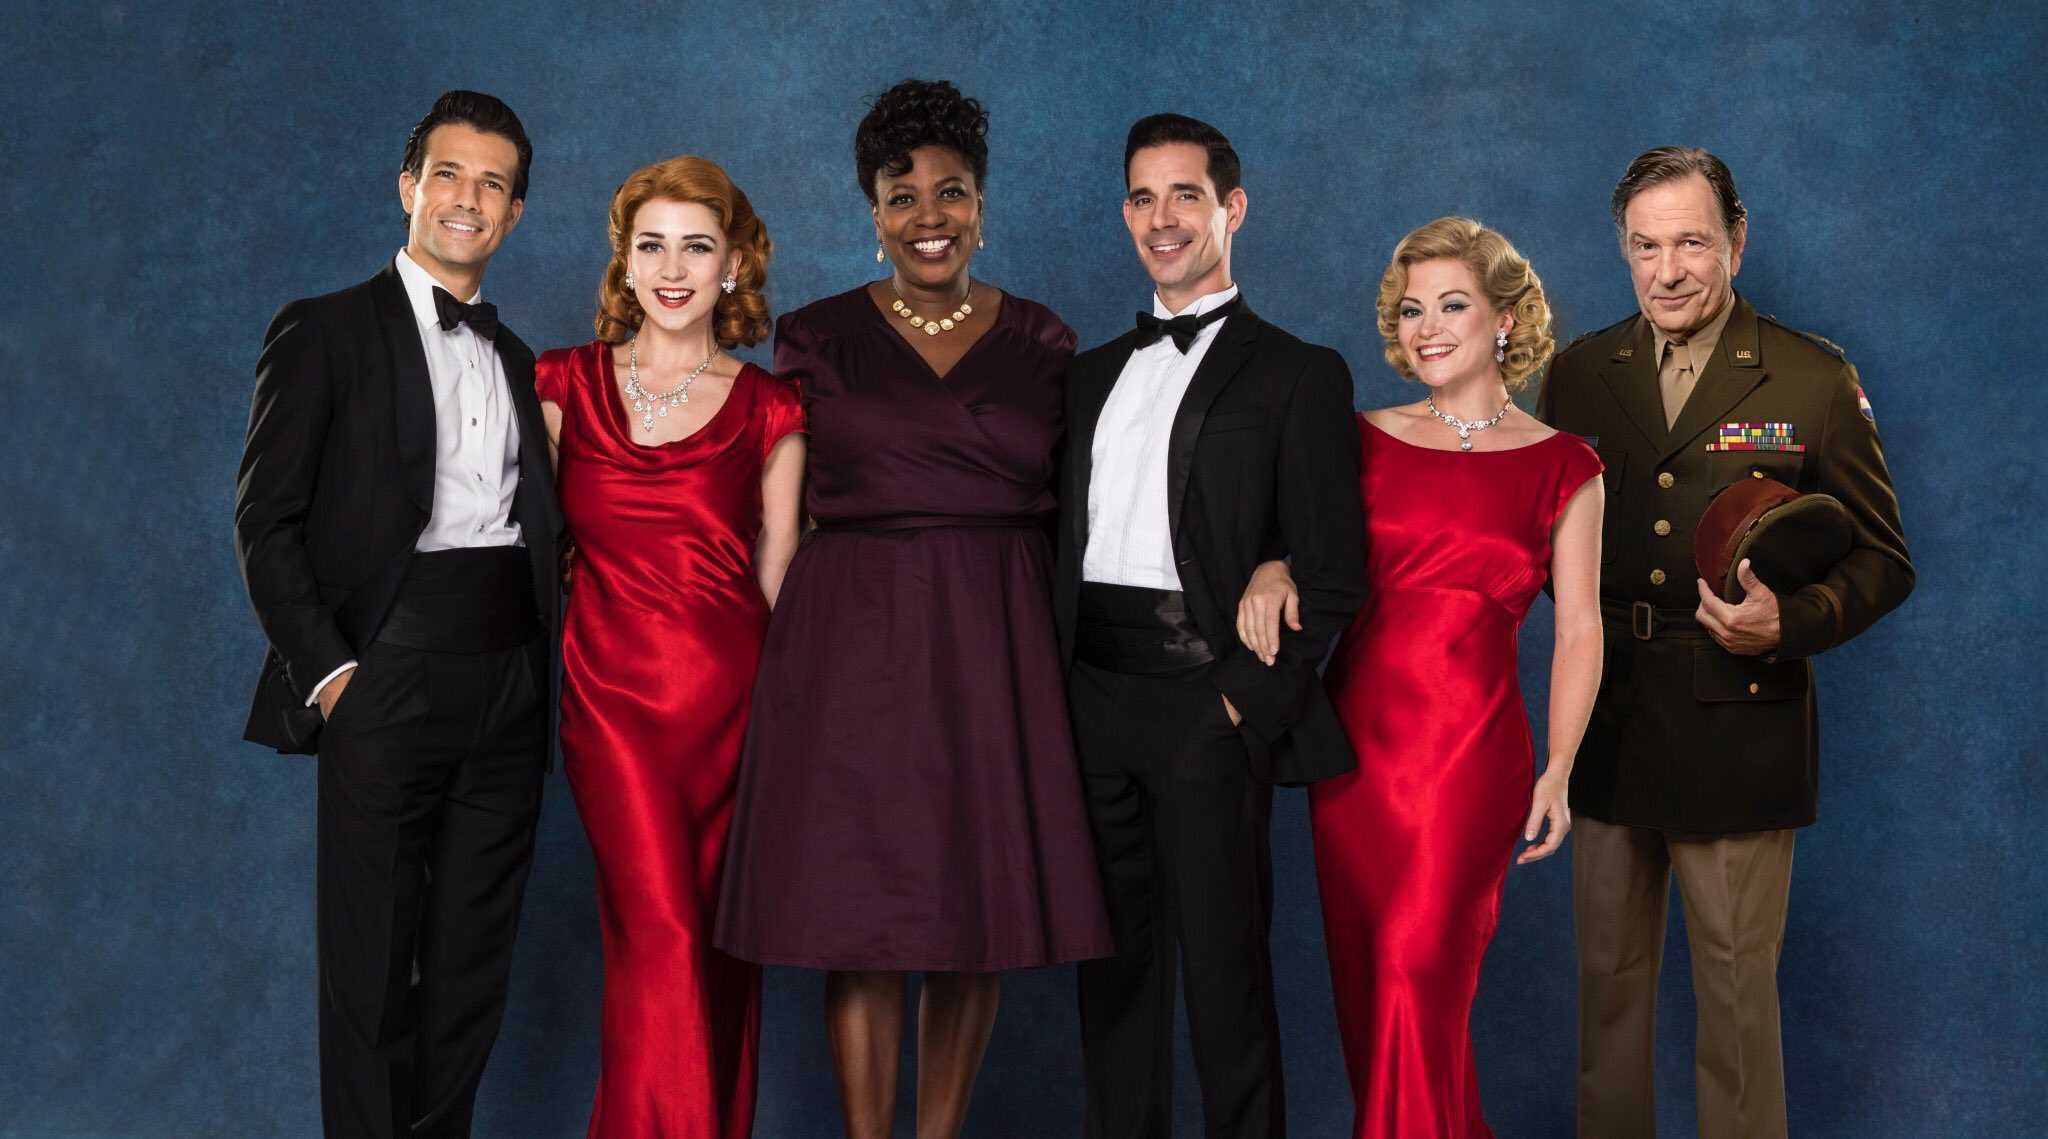 Full West End cast announced for White Christmas at the Dominion Theatre